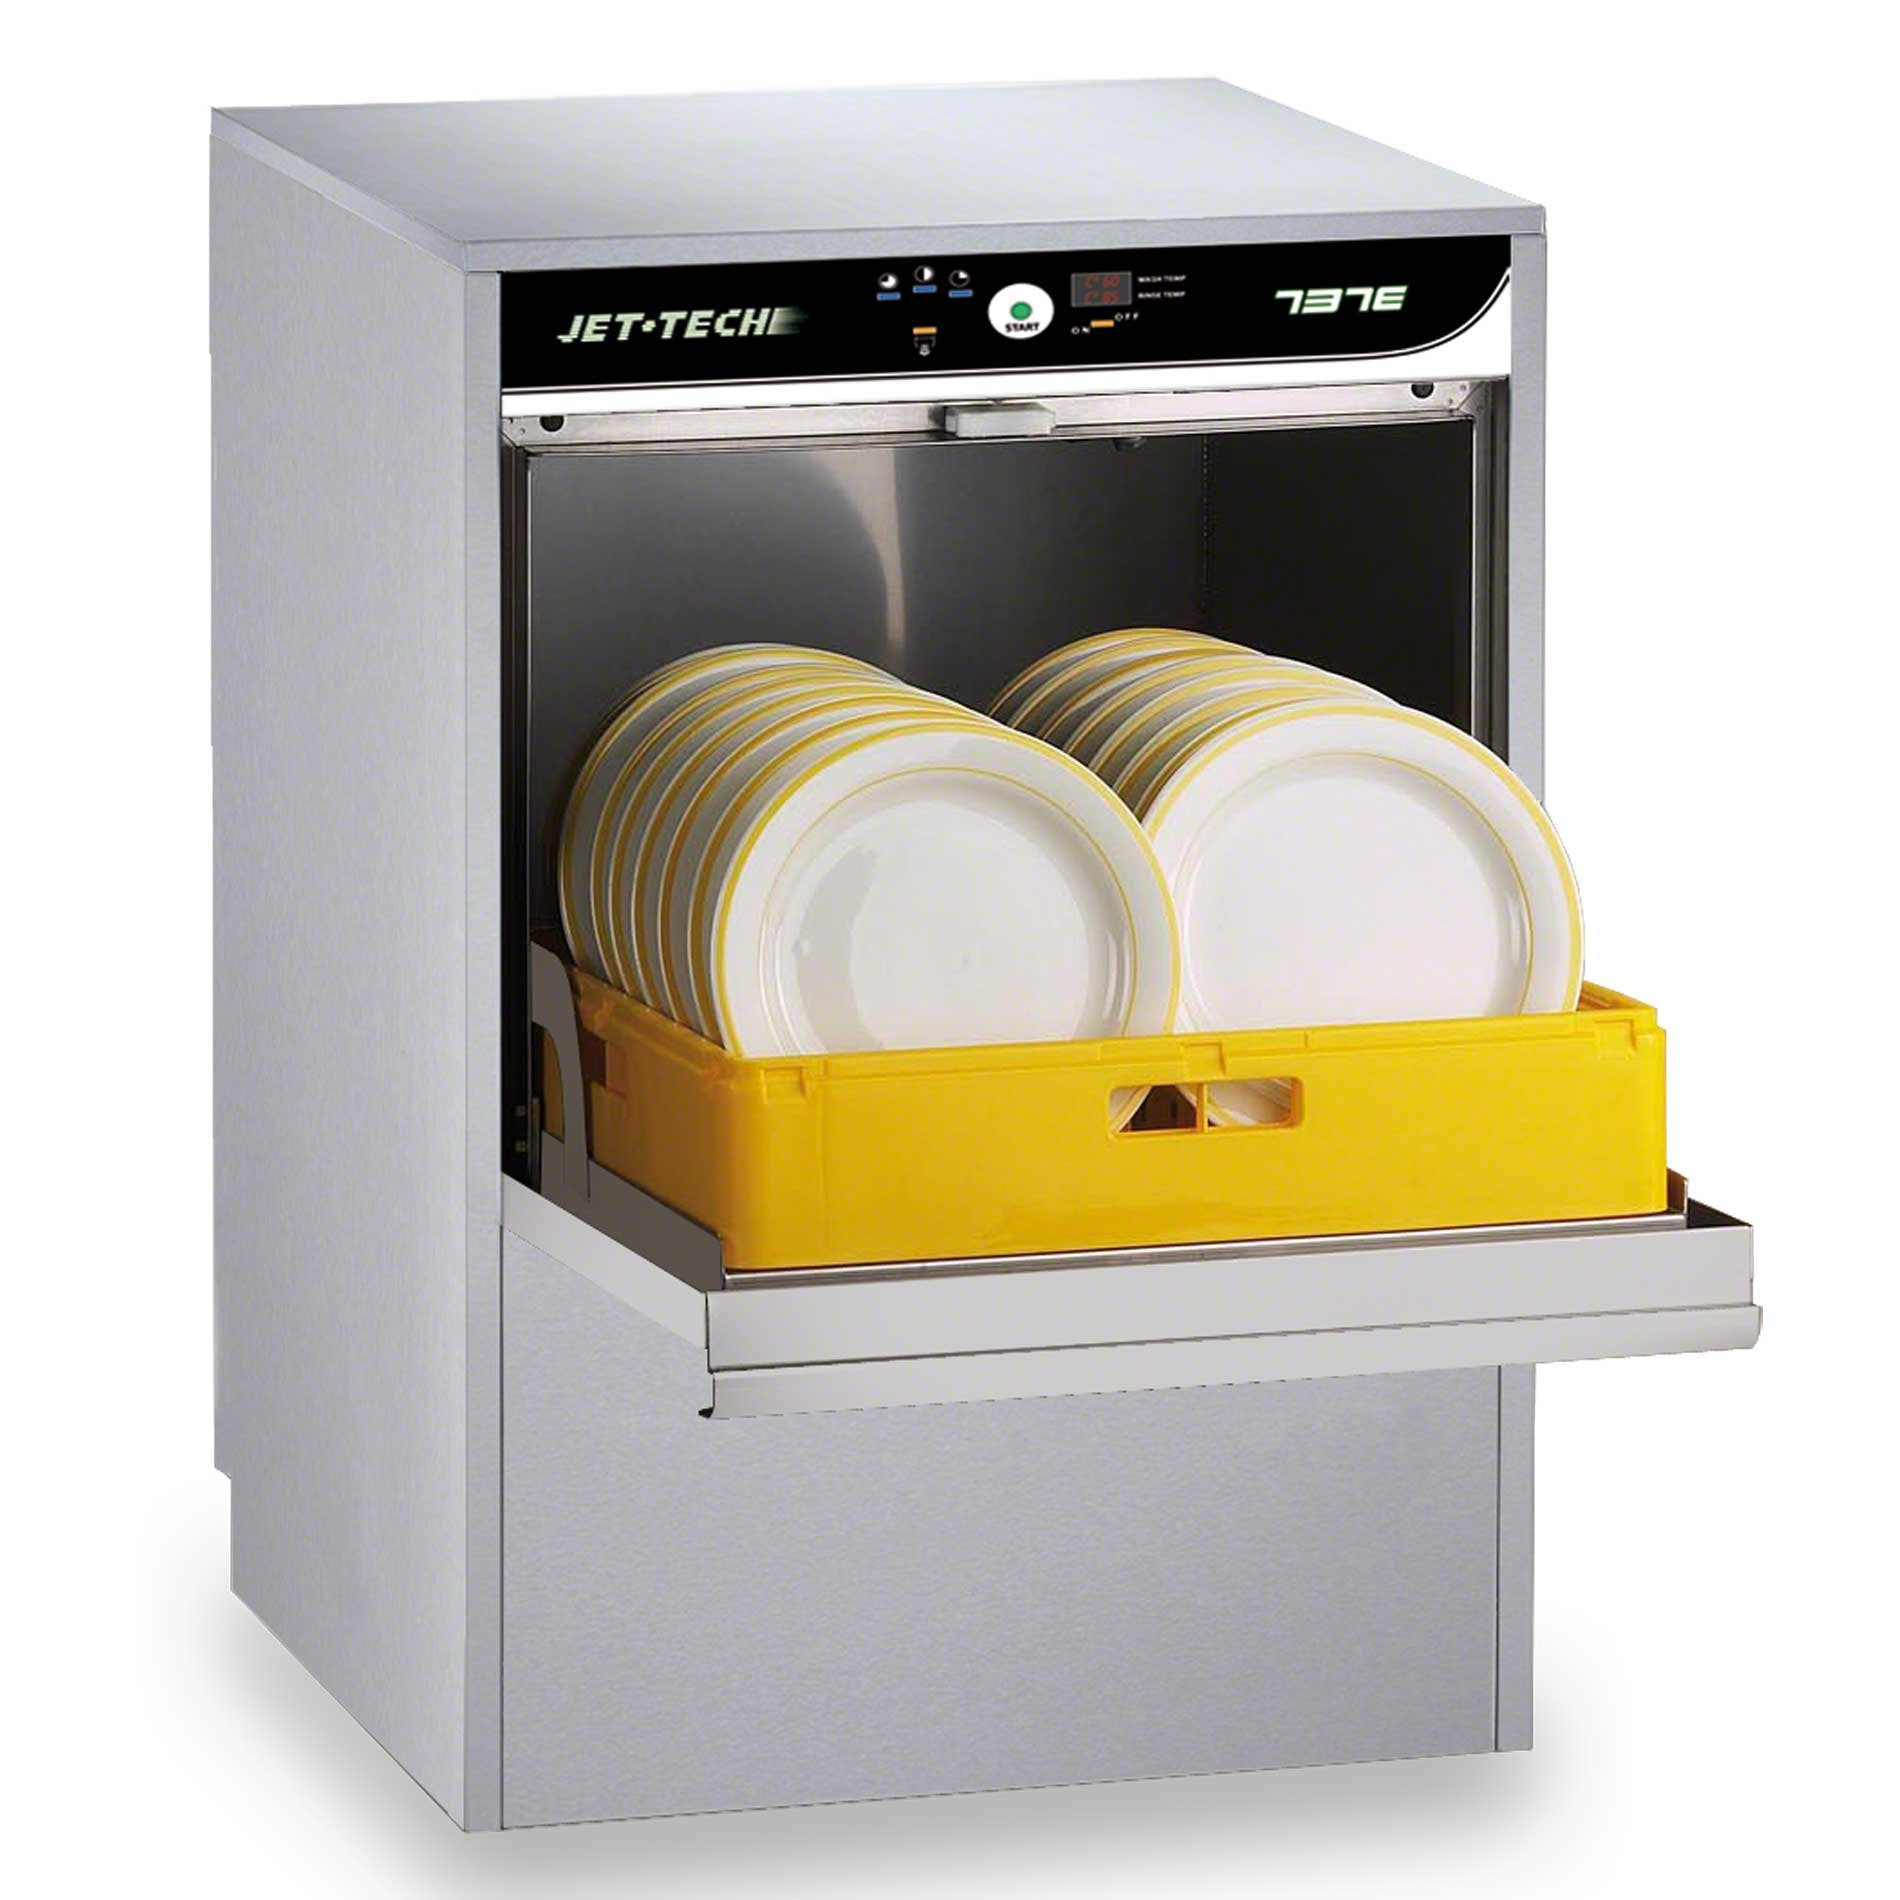 Jet Tech - 737E 30 Rack/Hr High-Temp Deluxe Dishwasher Commercial dishwasher sold by Food Service Warehouse